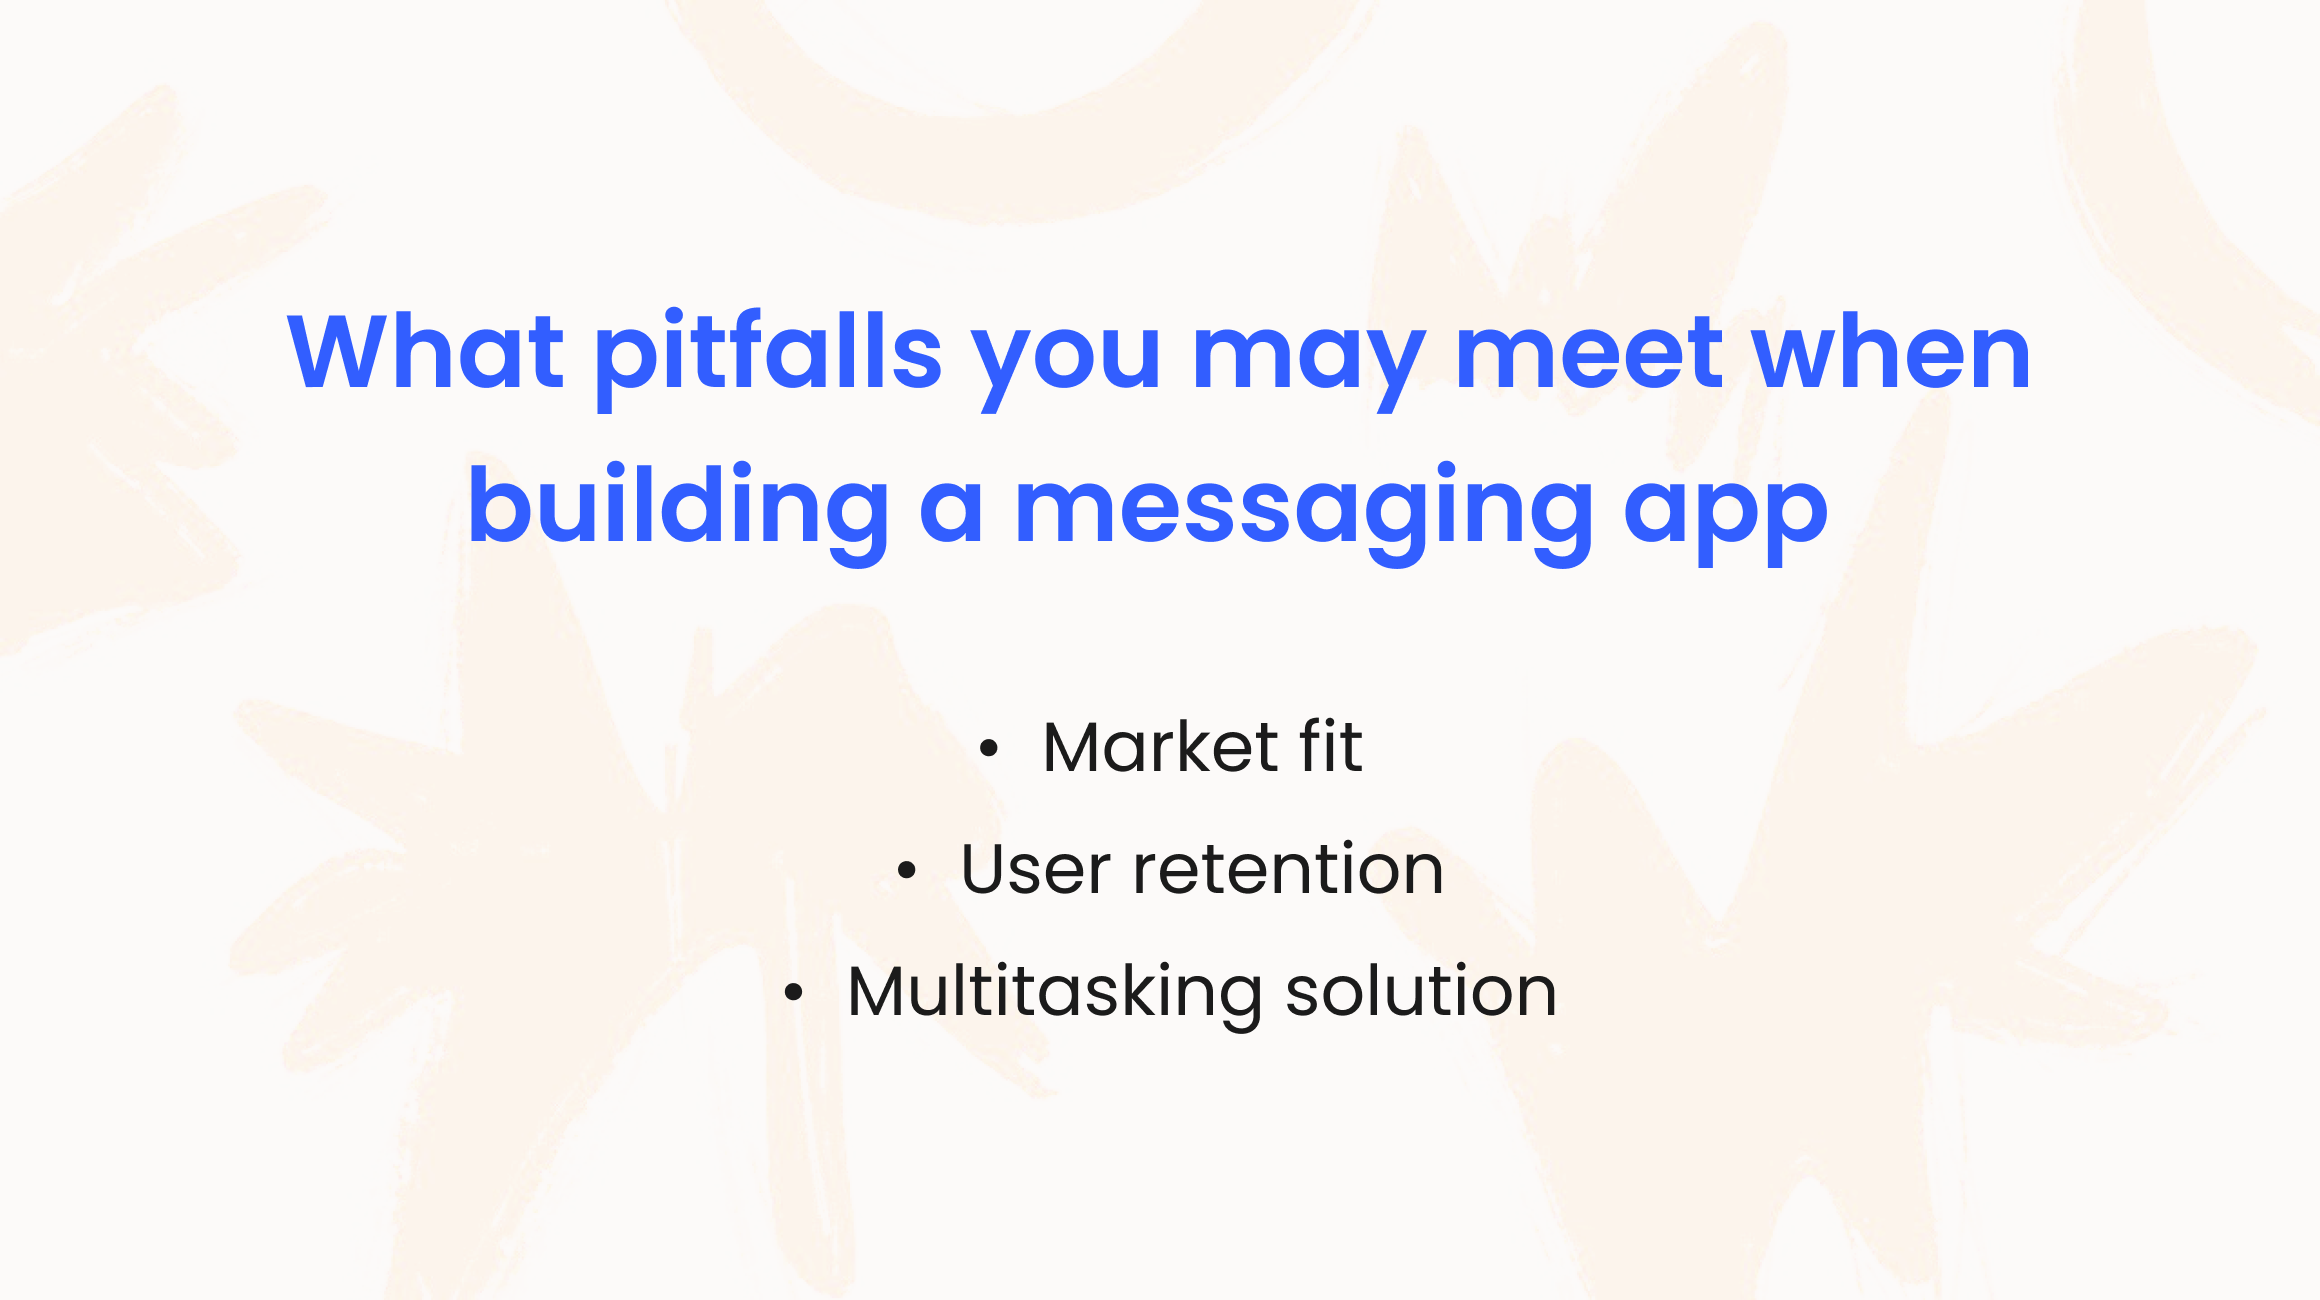 https://images.ctfassets.net/0nm5vlv2ad7a/4bHJVuzpLkRDydH2UzXyDX/d2a0bf2b65fe0fb19e0d967f3f3f221f/pitfalls_of_messaging_app_development.png